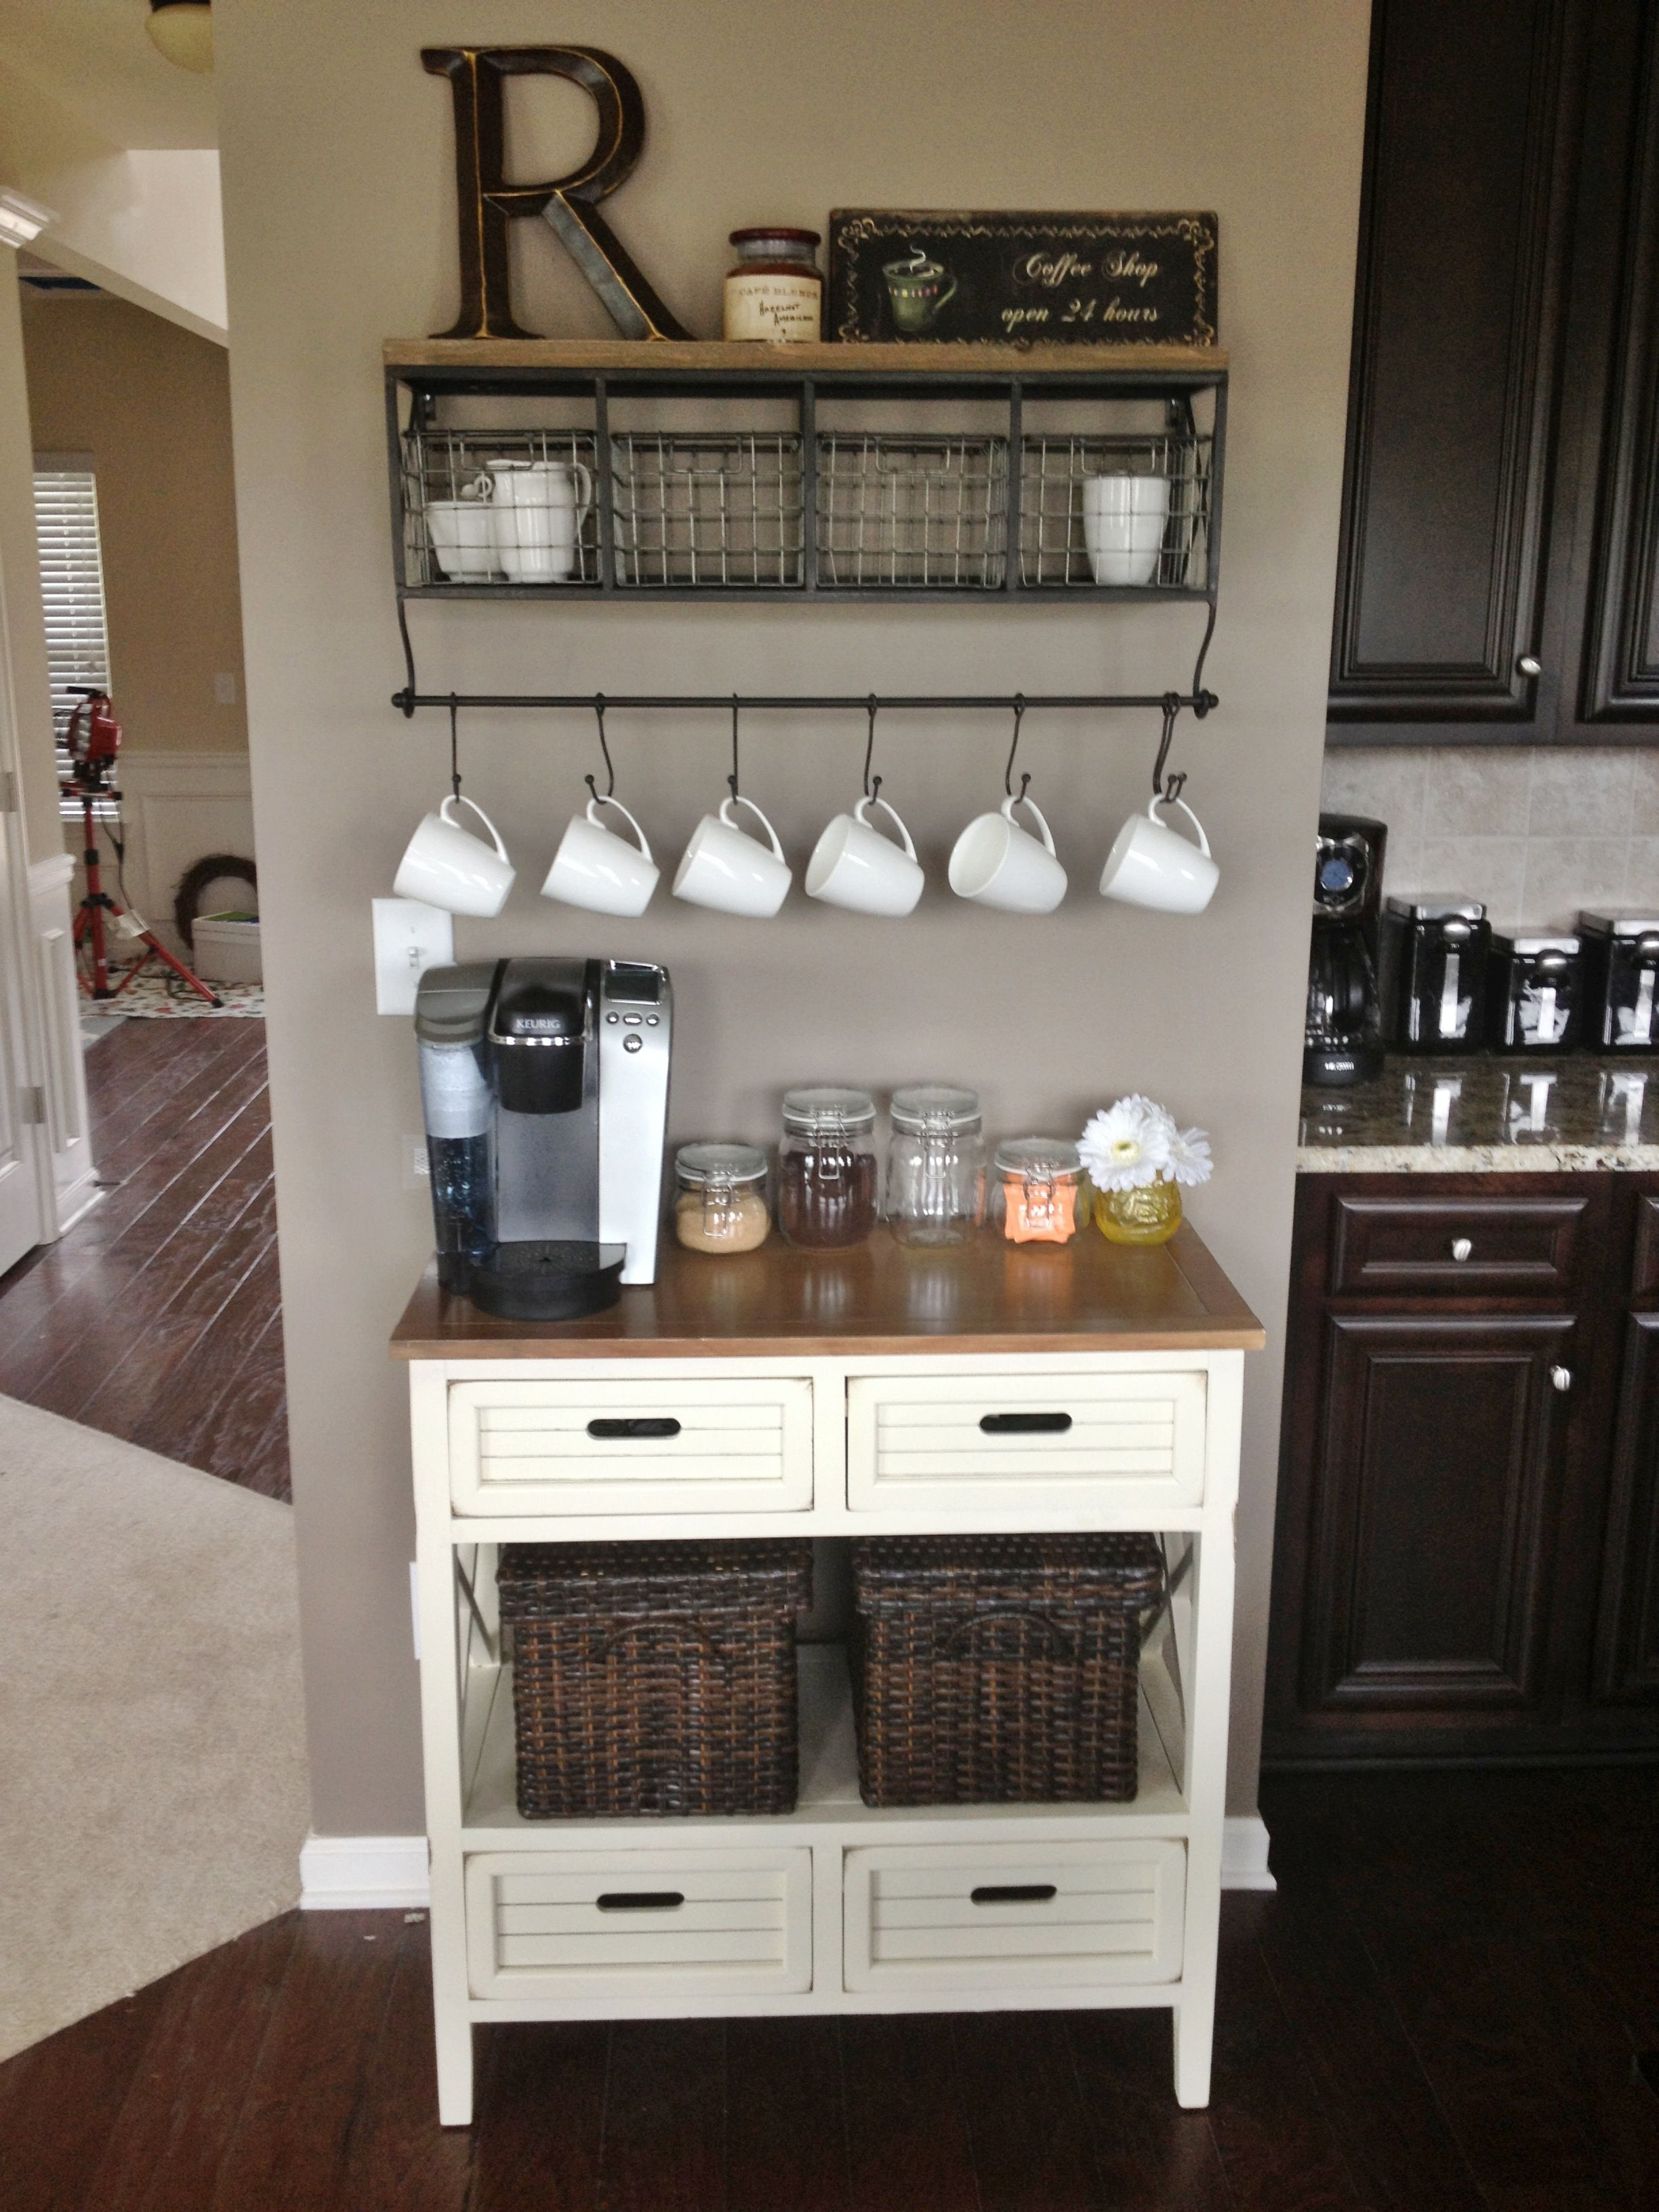 23 Adorable Coffee Station Ideas and How to Make Your Own